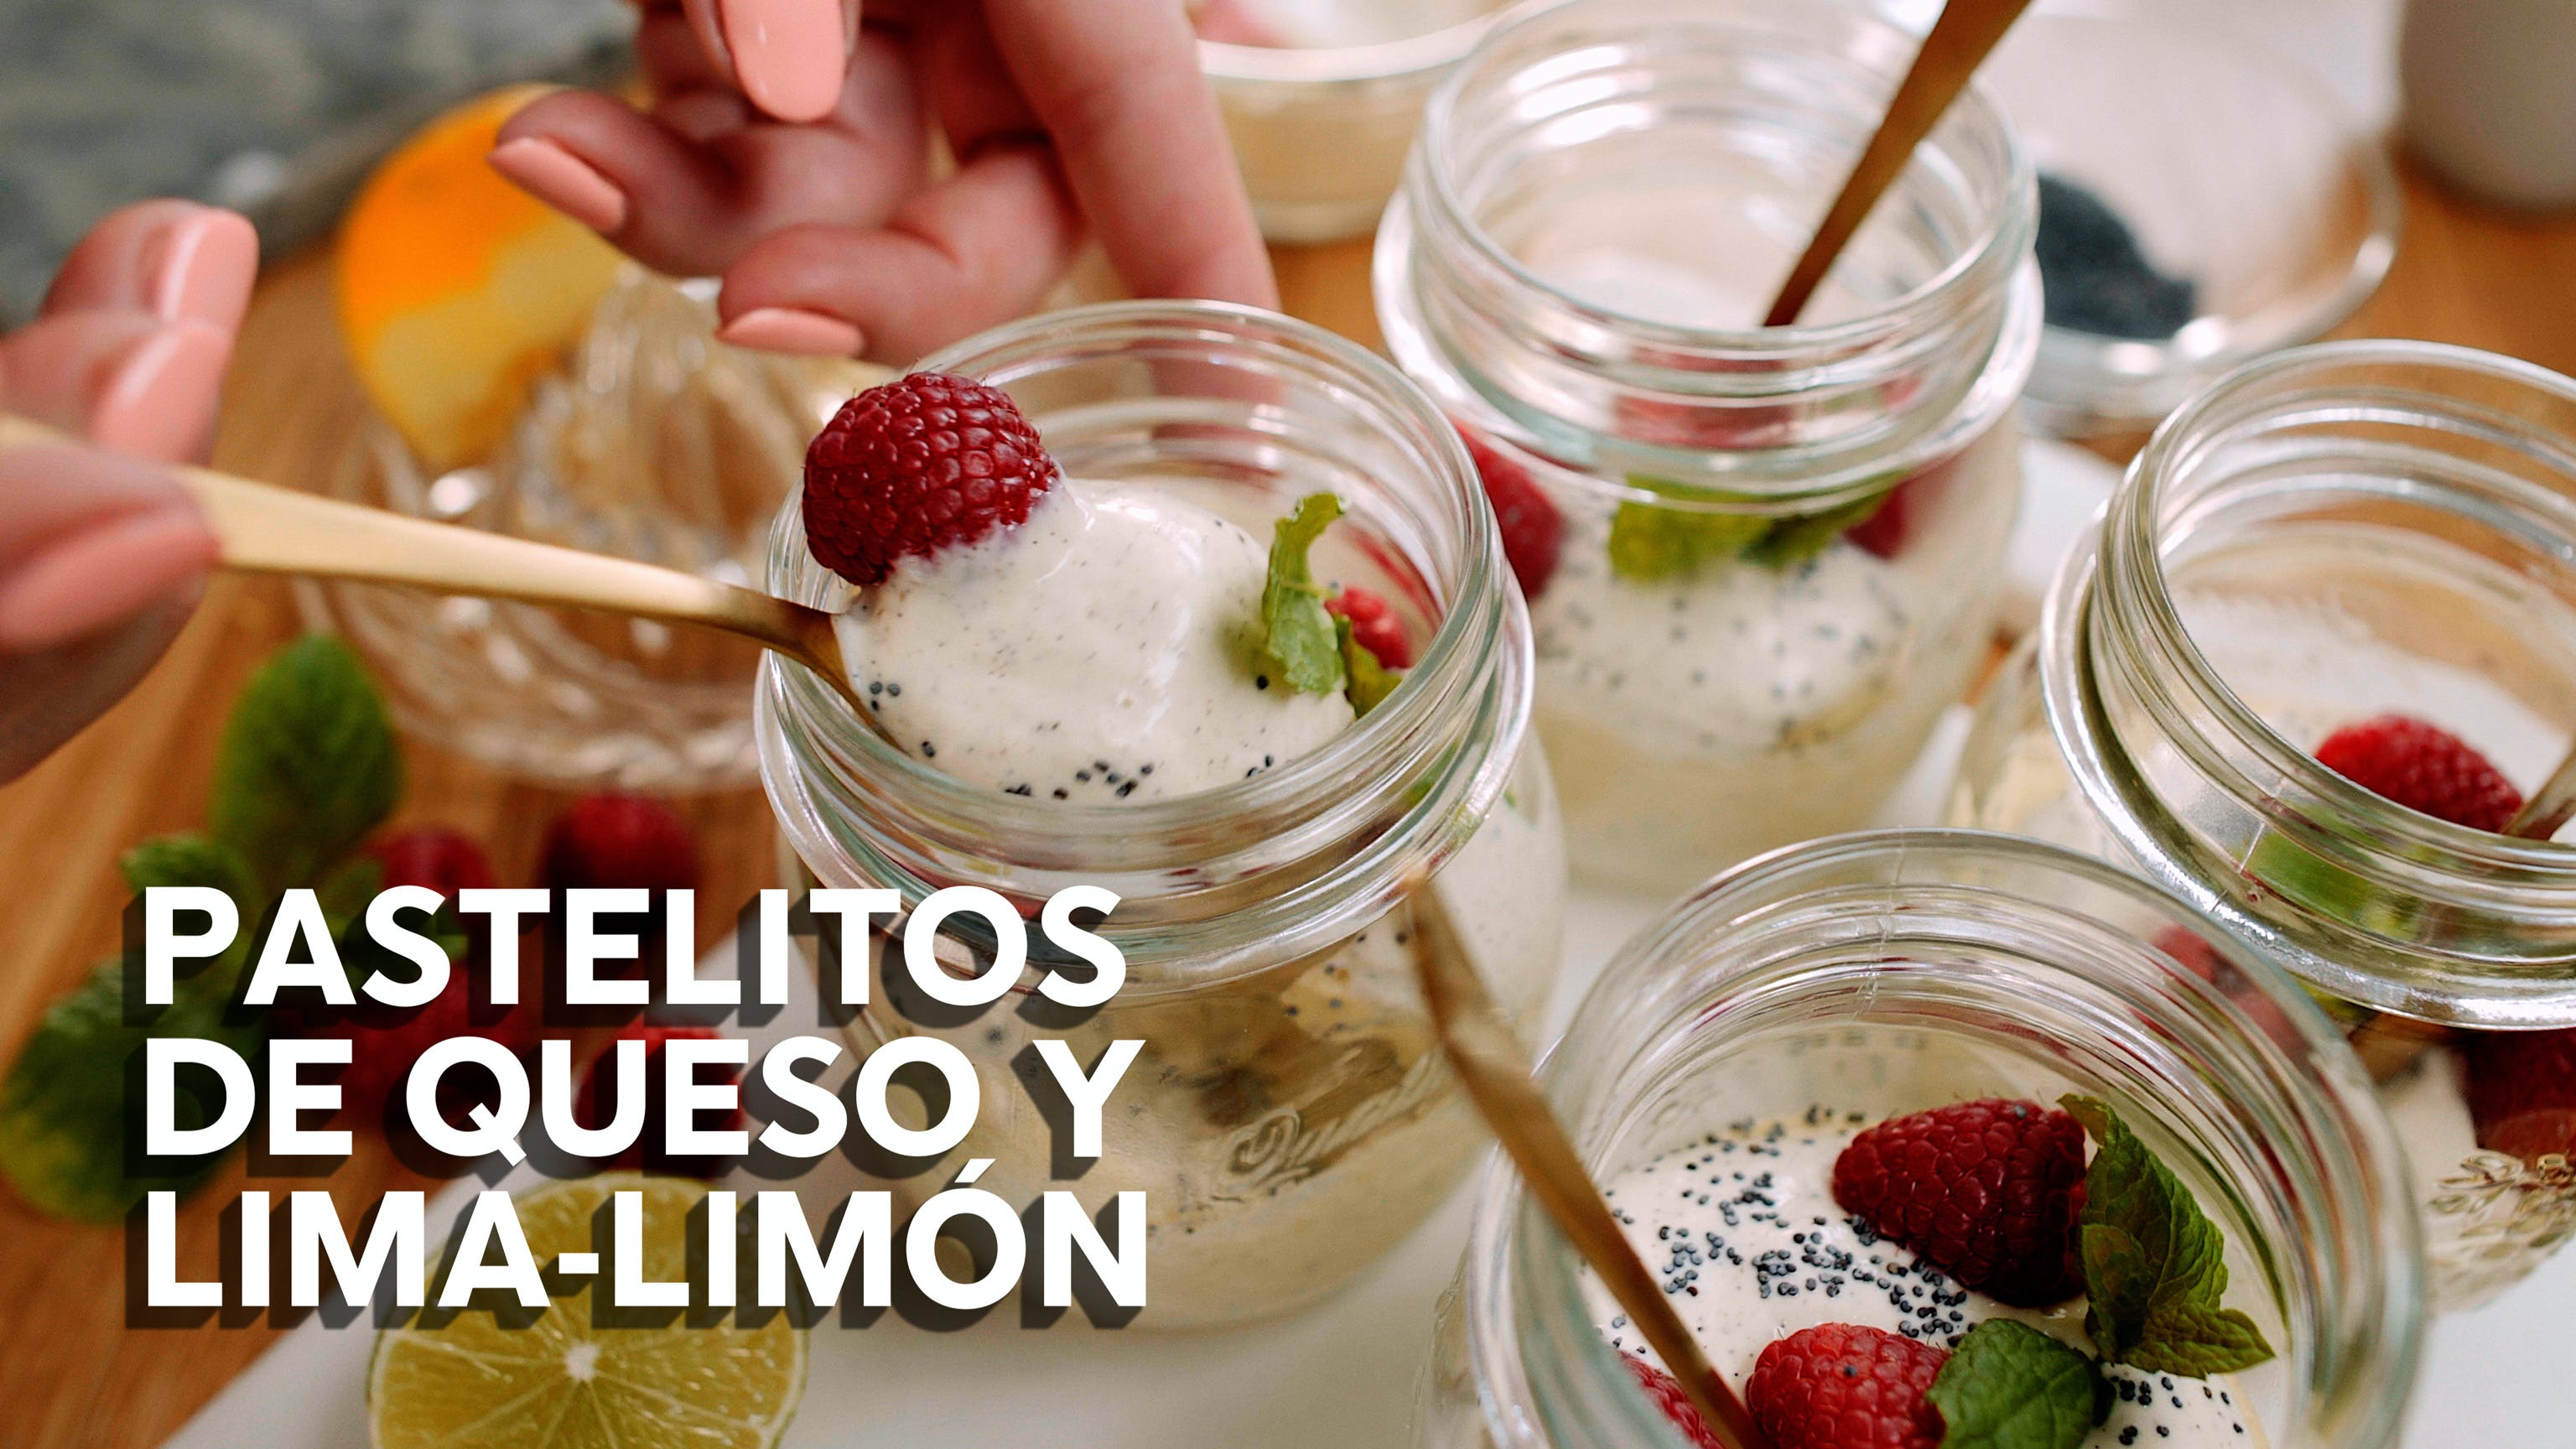 Pastelitos de queso y lima-limón, receta en video